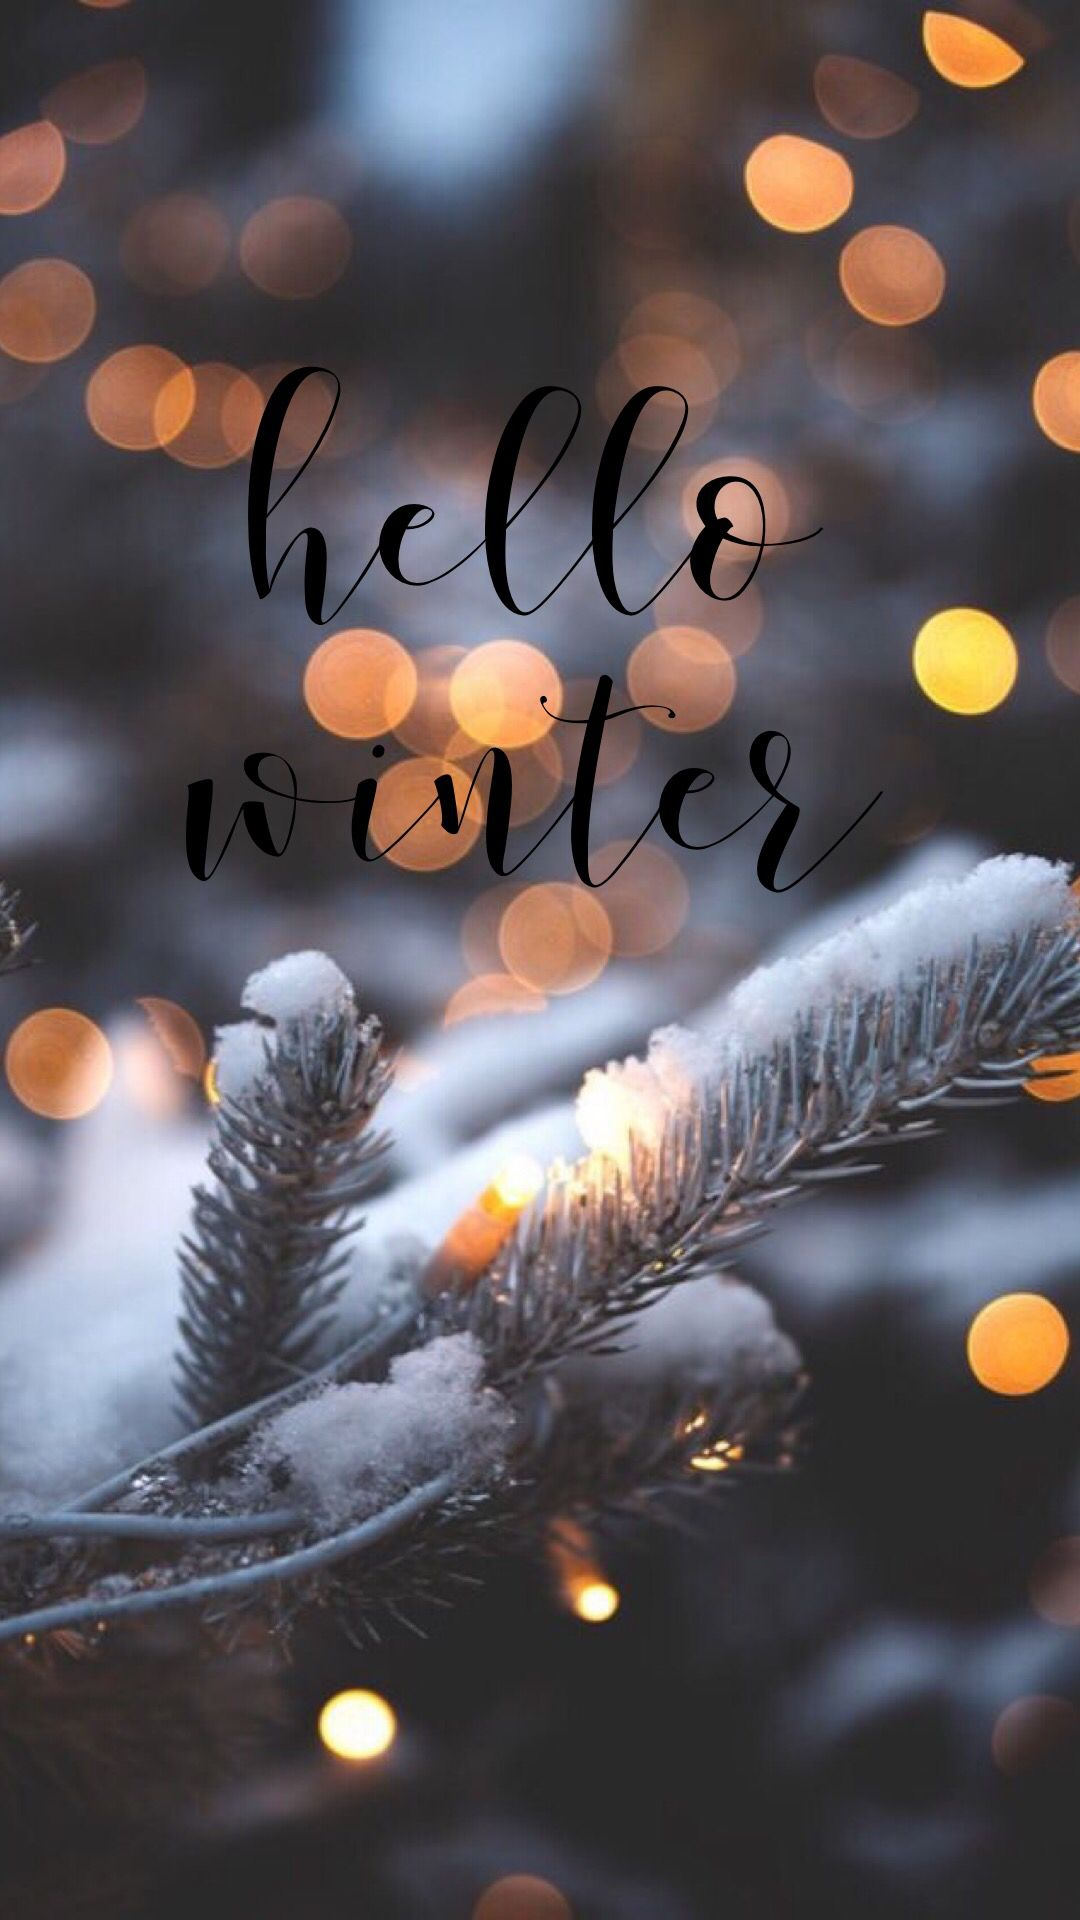 hellowinter winter wallpaper background